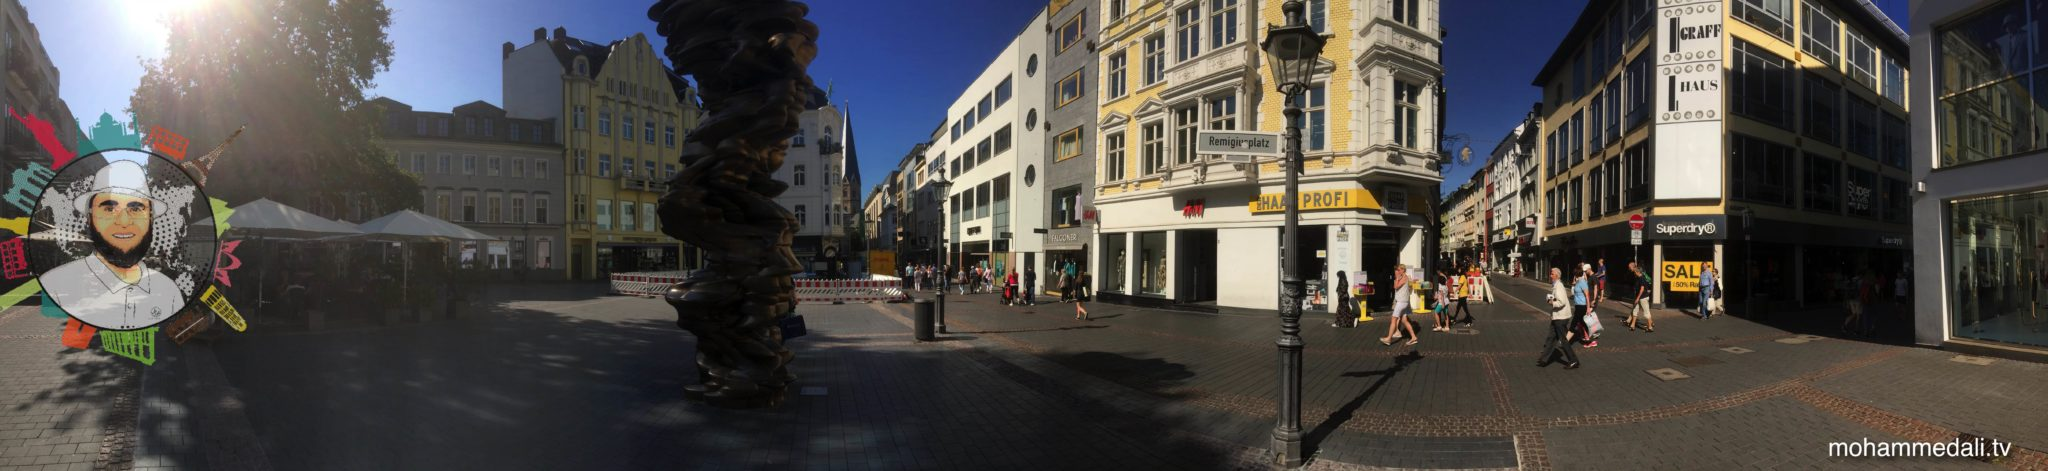 Amazing day out in the city of Bonn. Walking along Remigius street.